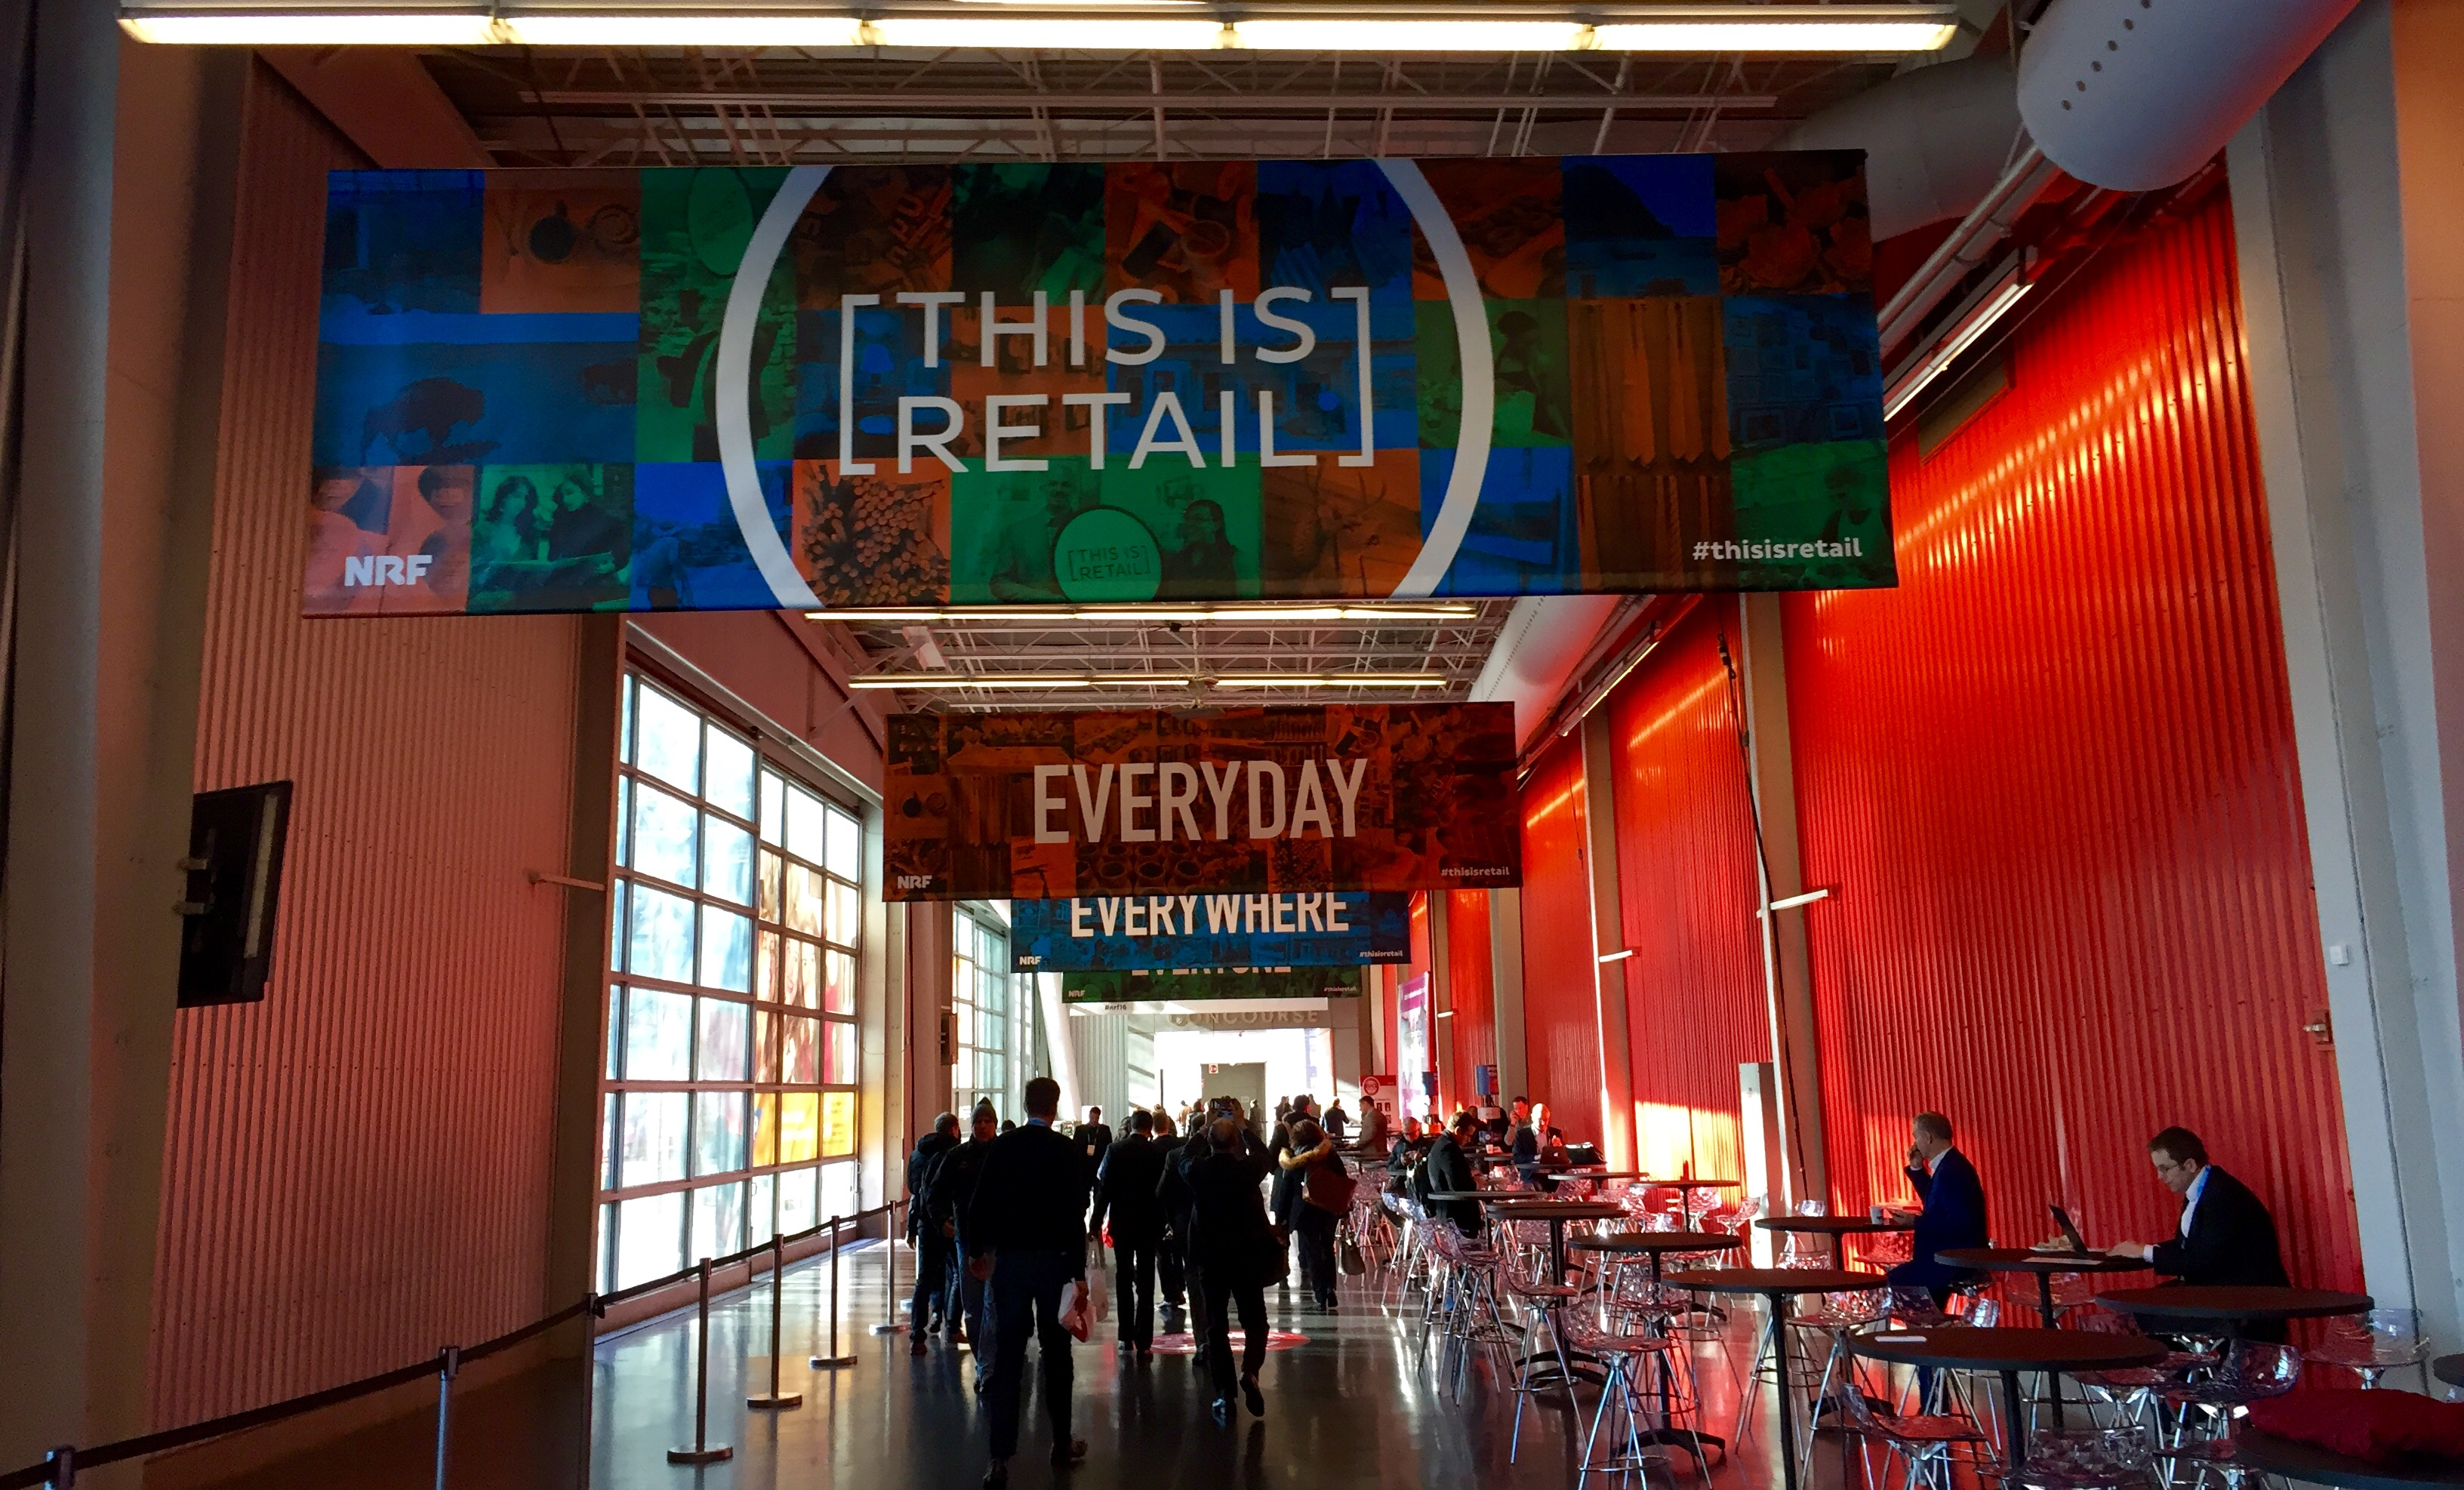 Is Peak Omnichannel Here? One Big Takeaway From the NRF's BIG Show